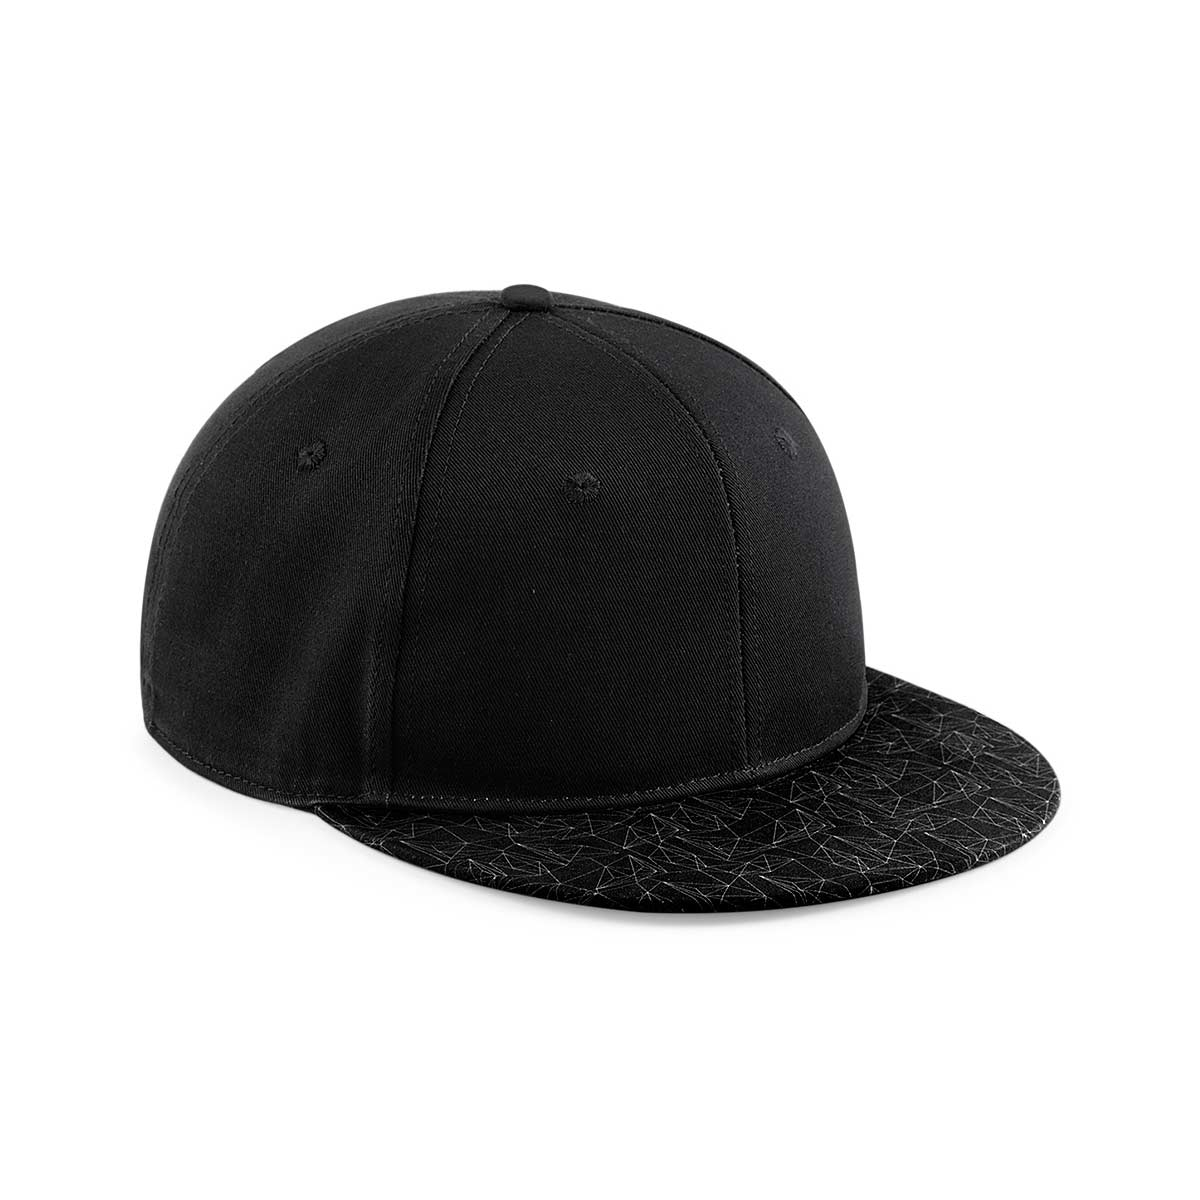 Beechfield 6 Panel Graphic Peak Snapback Cap - Geometric